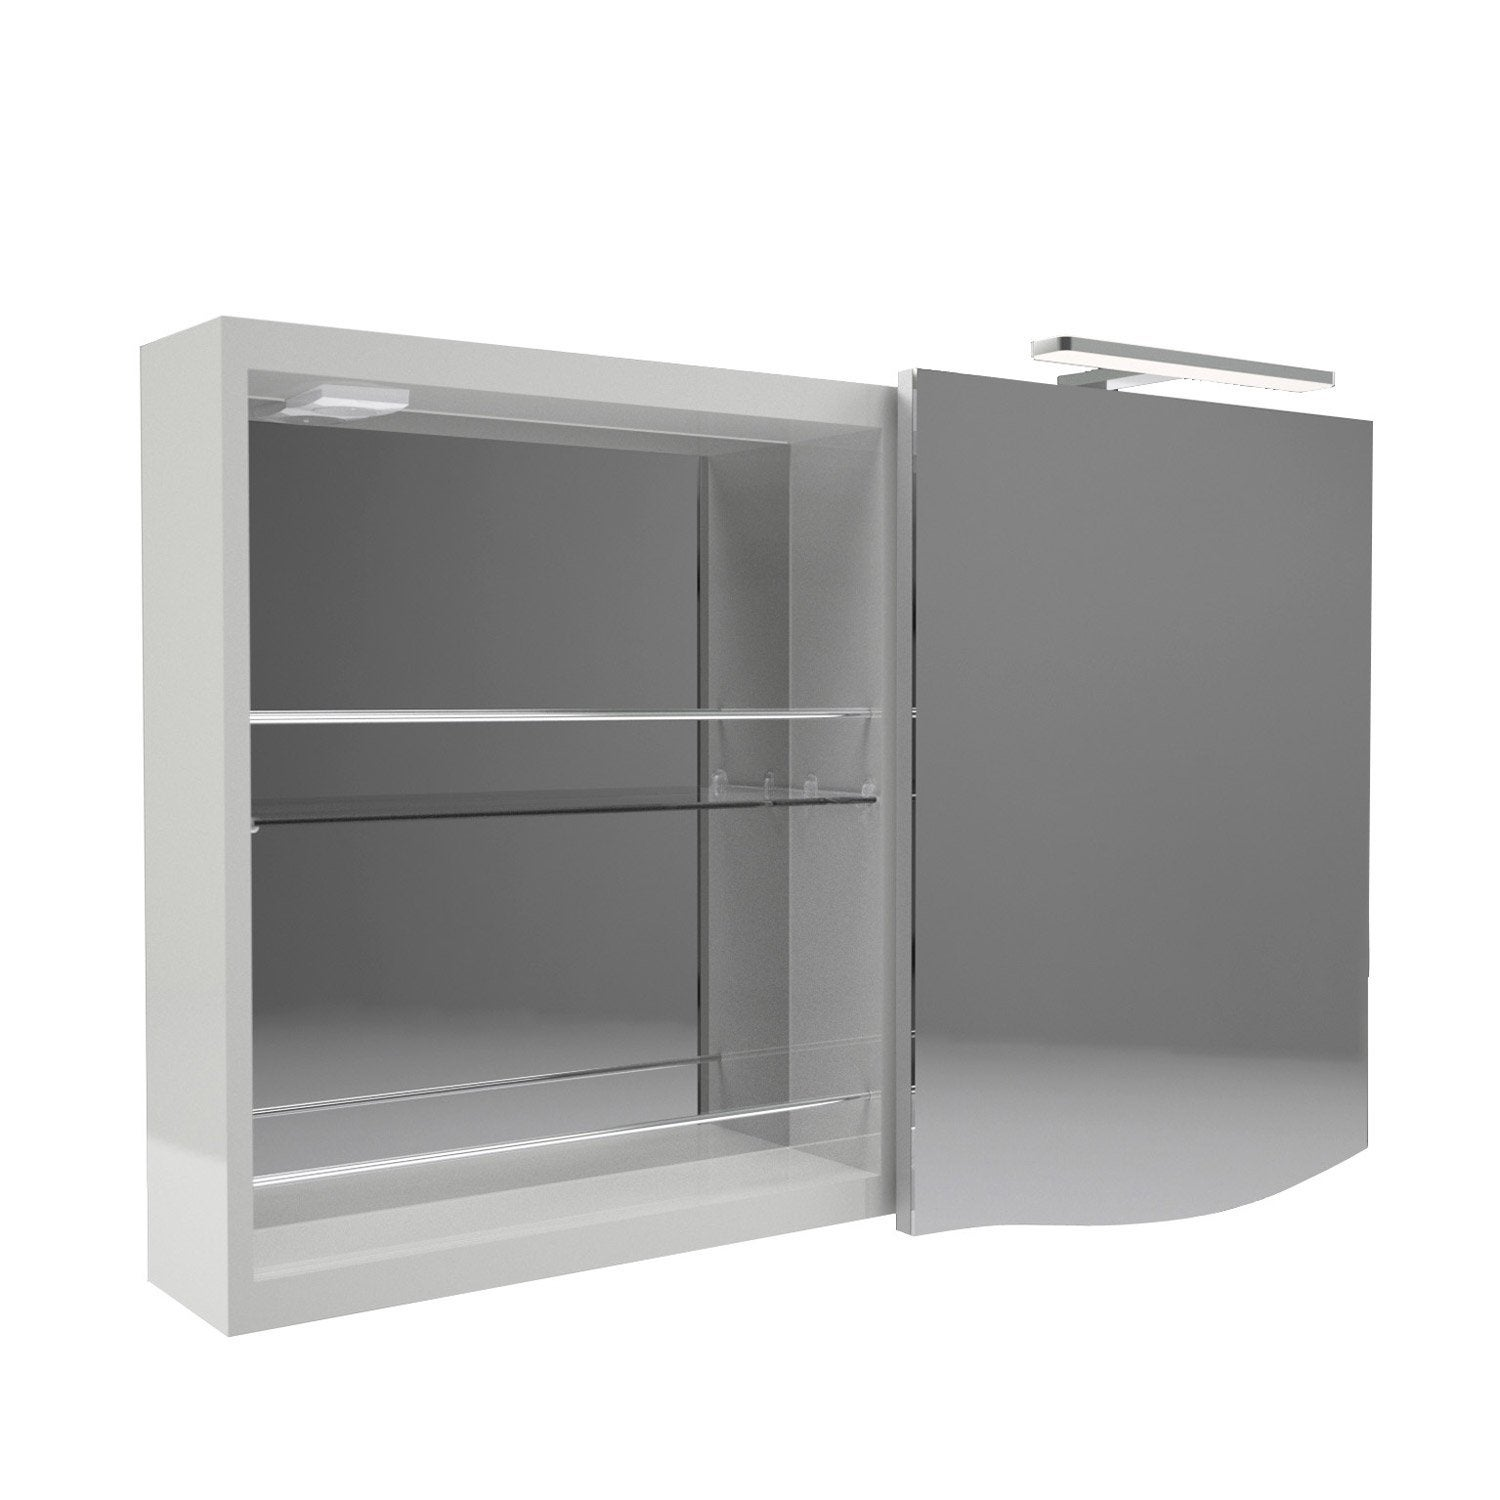 armoire de toilette lumineuse l 100 cm gris decotec el gance leroy merlin. Black Bedroom Furniture Sets. Home Design Ideas